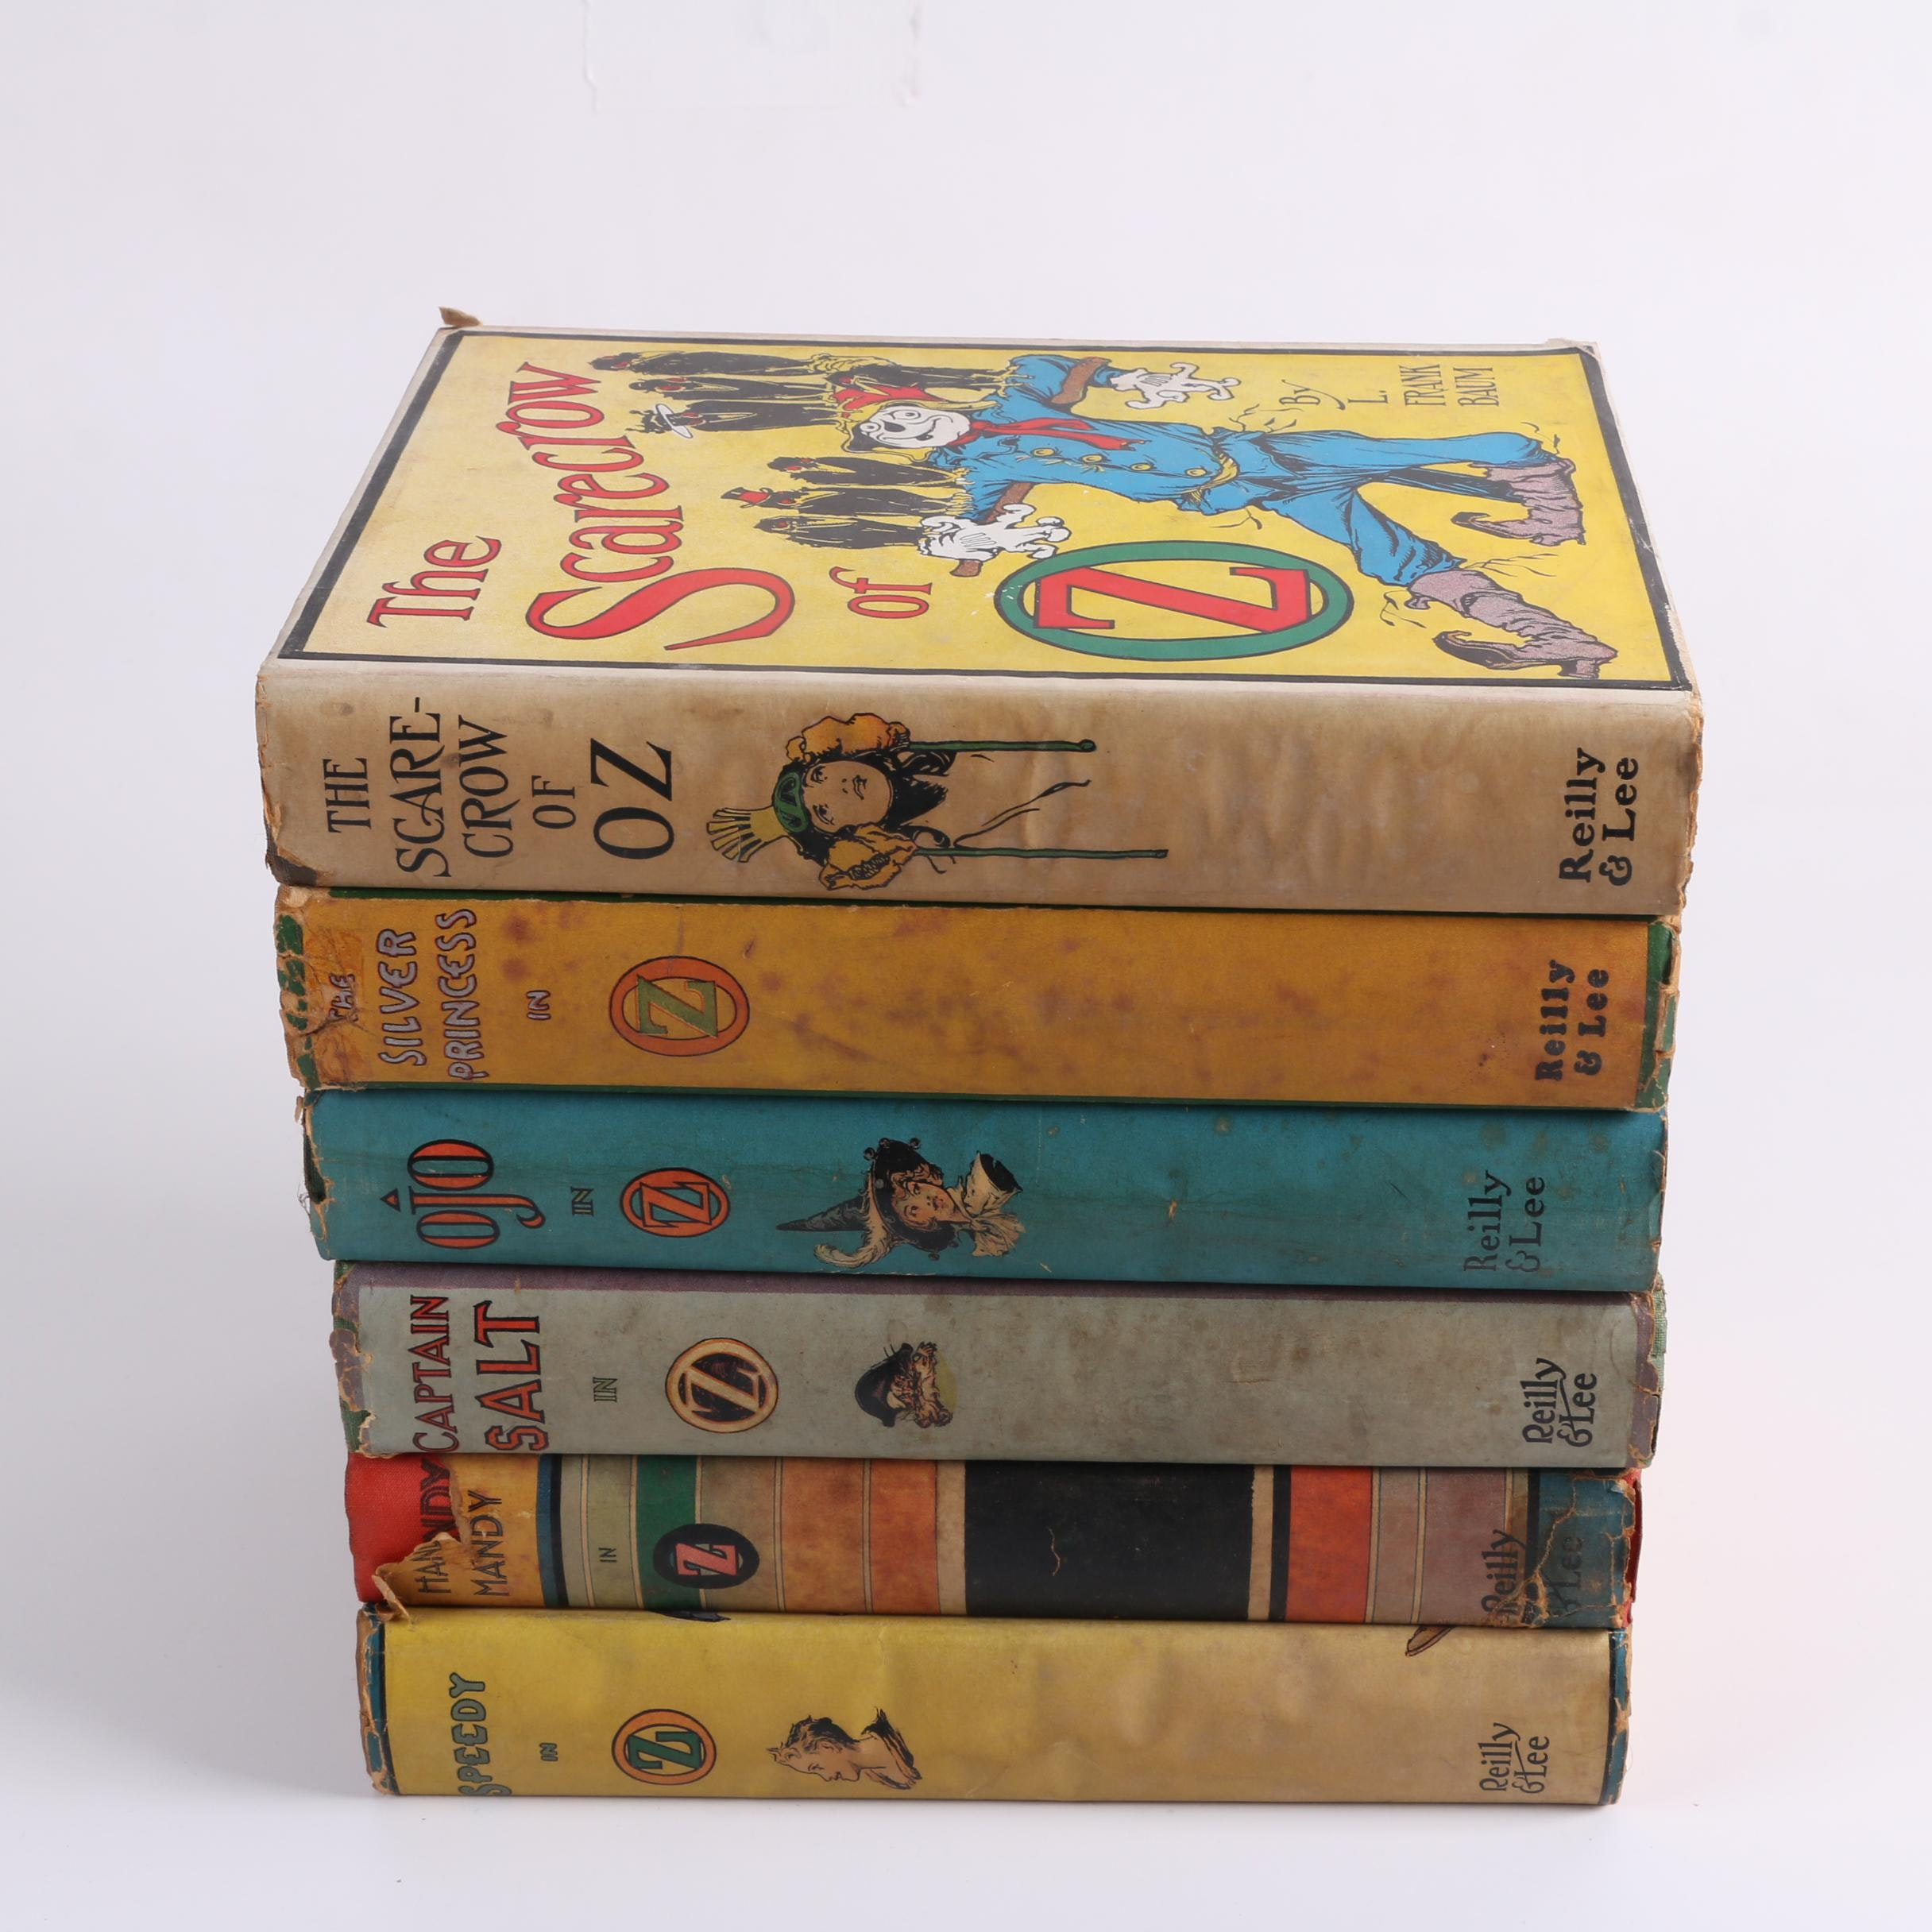 """""""Oz"""" Books by L. Frank Baum and Ruth Plumly Thompson Including """"Ojo in Oz"""""""